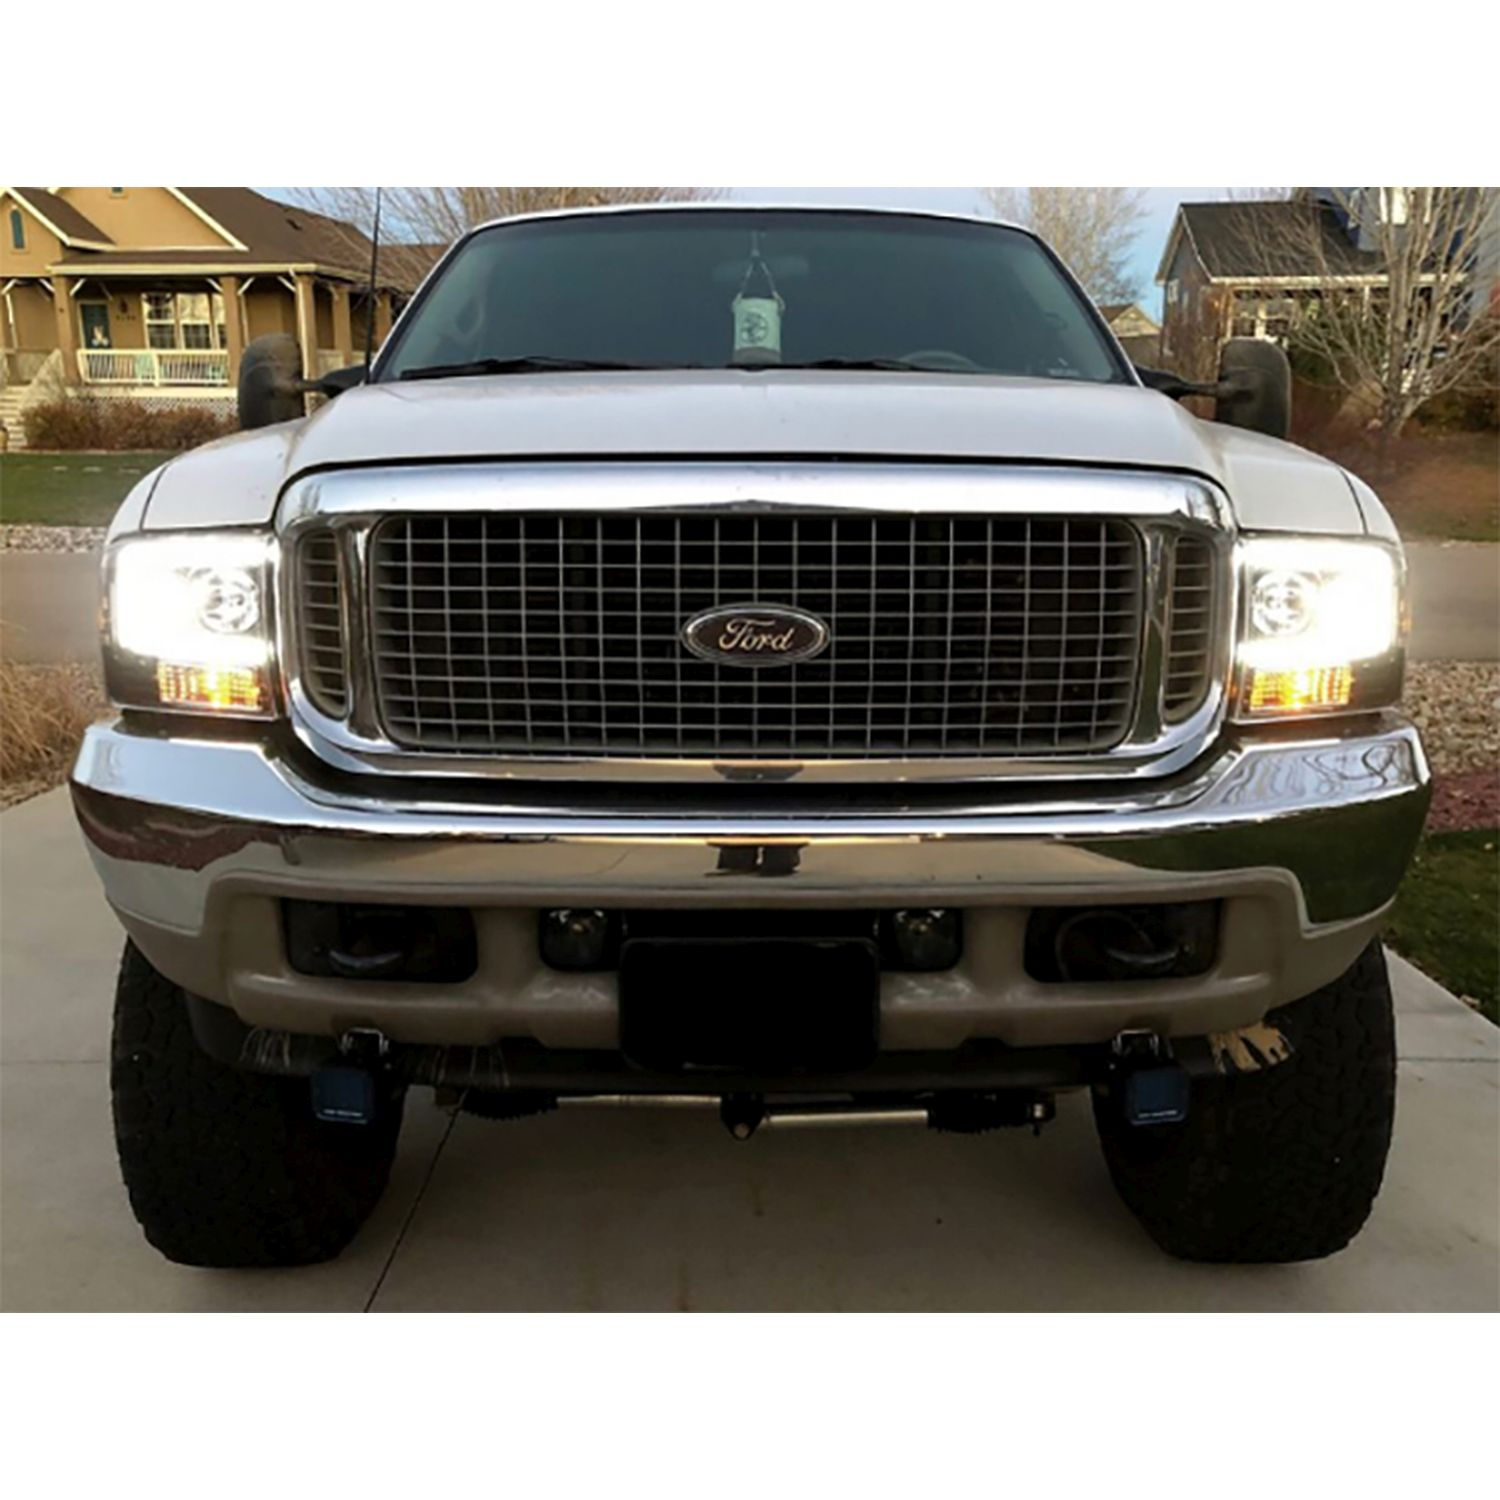 99 F350 Headlights >> Recon 264192bkc Ford Superduty 99 04 F250 F350 F450 F550 Smoked Black Headlights Projector